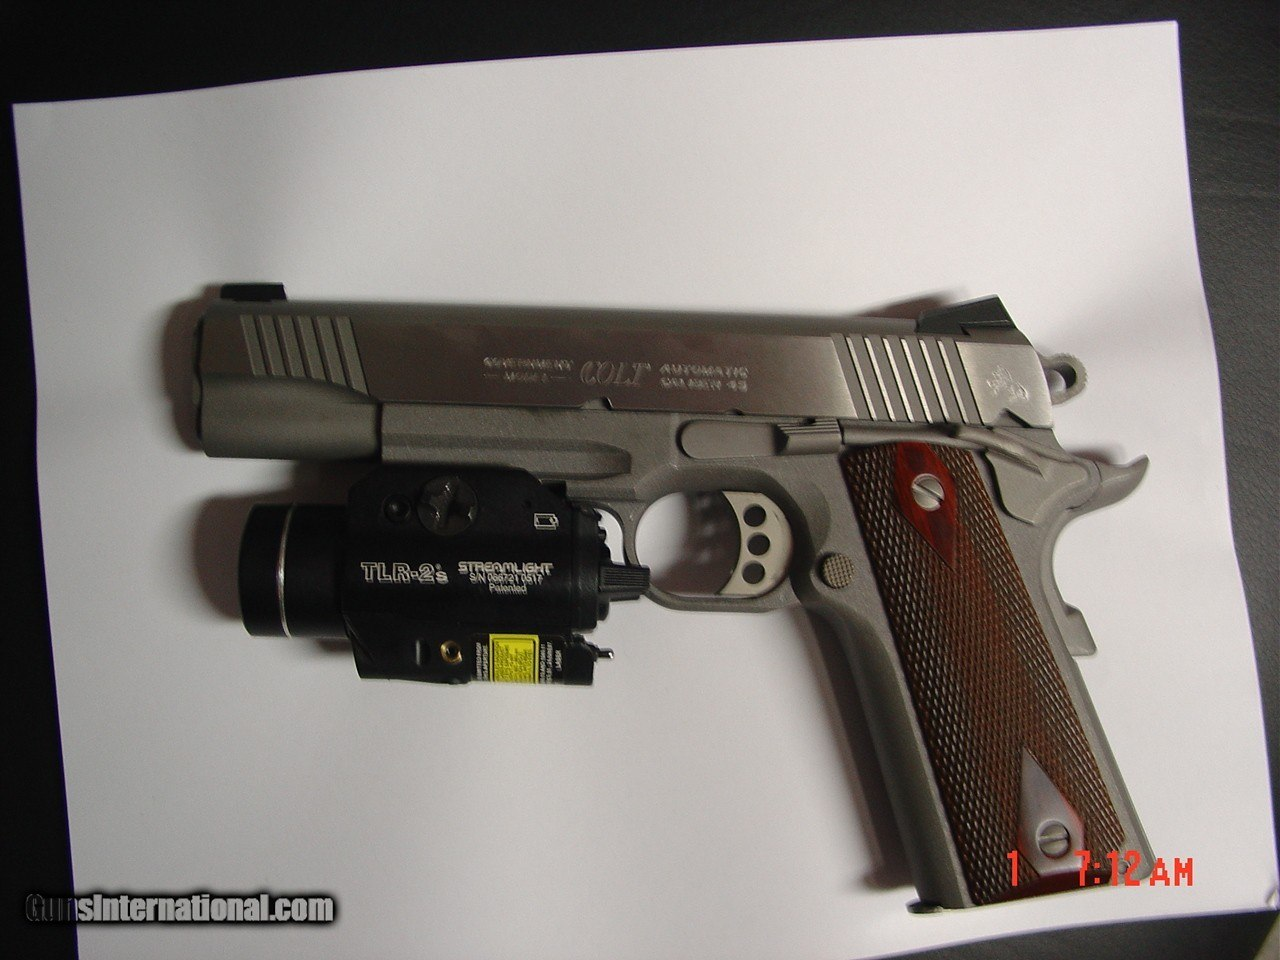 Colt Rail Gun, Government 45,Series 80 with Streamlight